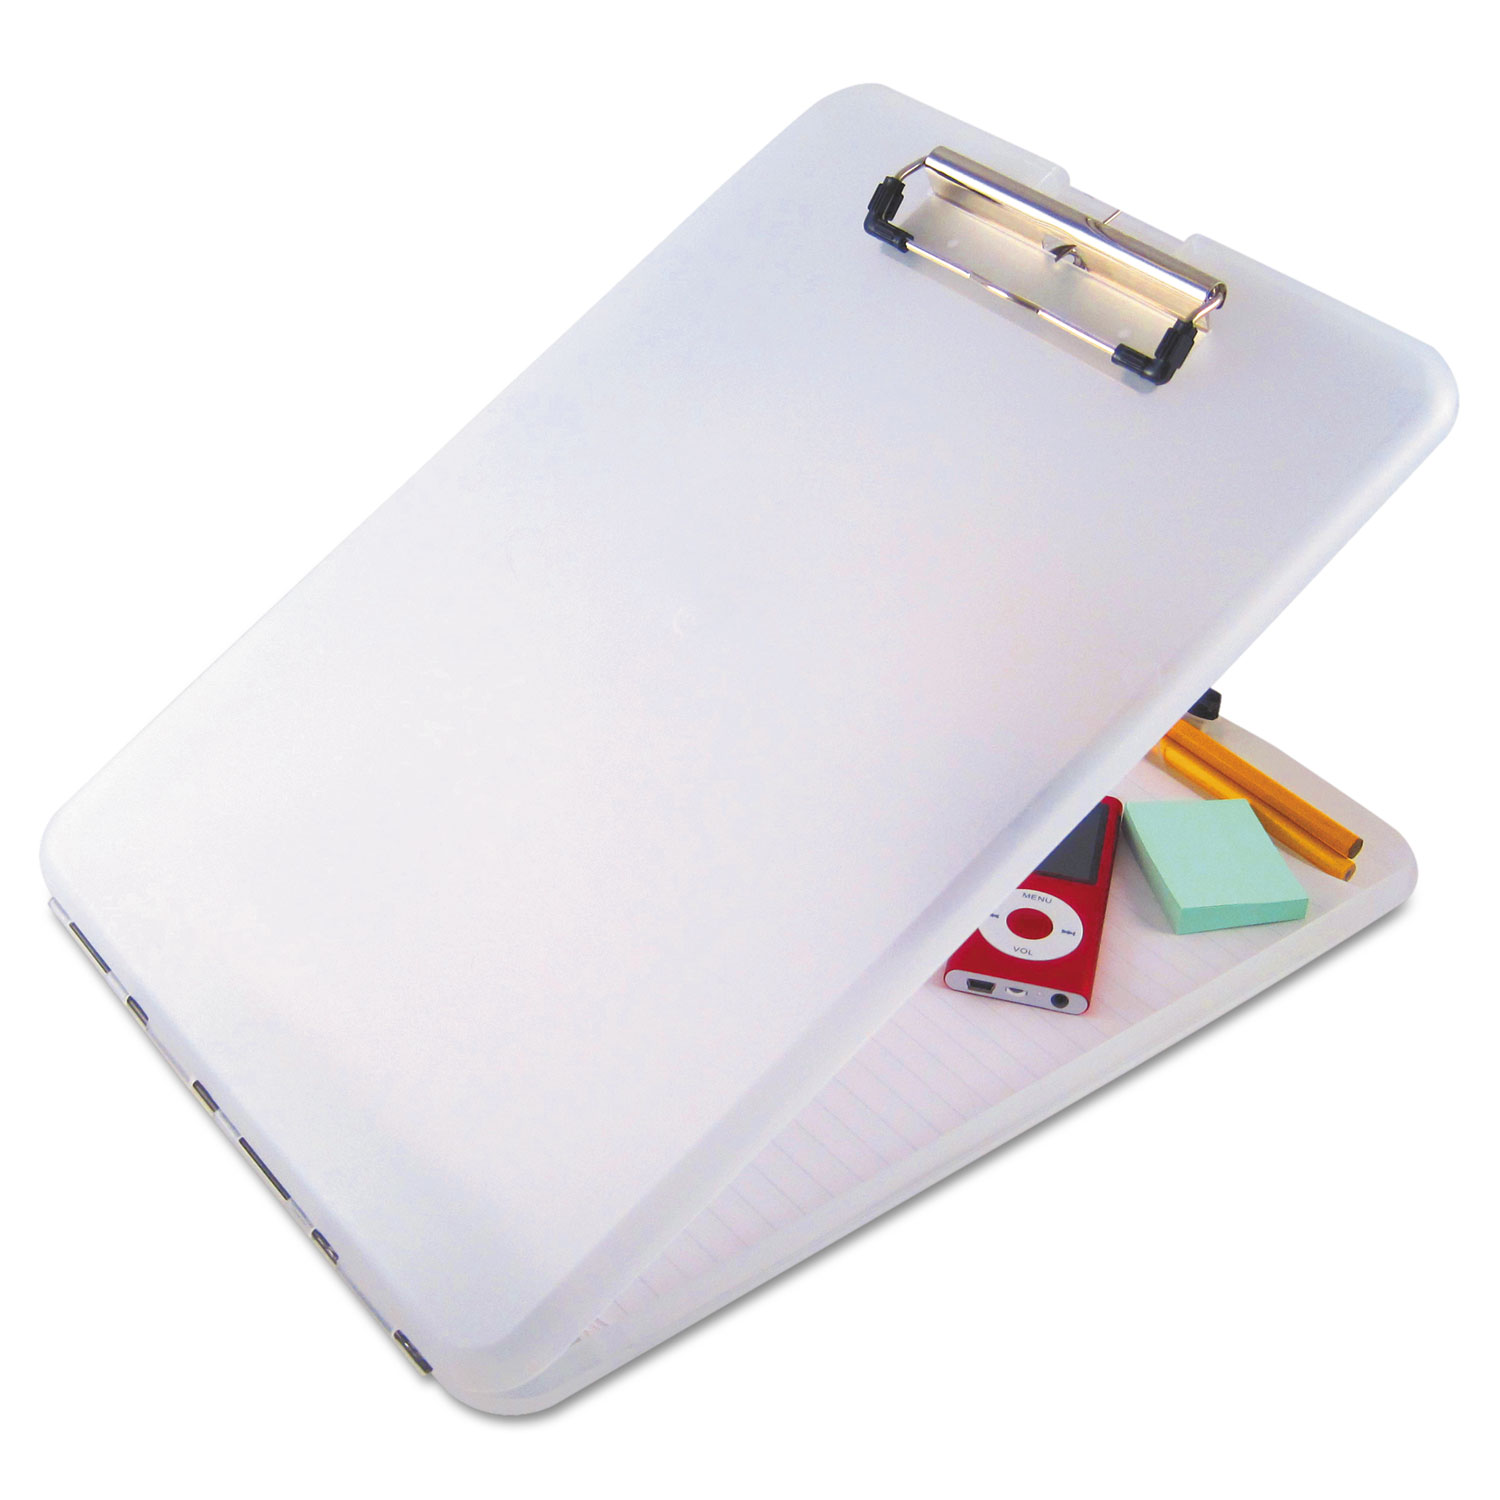 slimmate storage clipboard by saunders sau00871